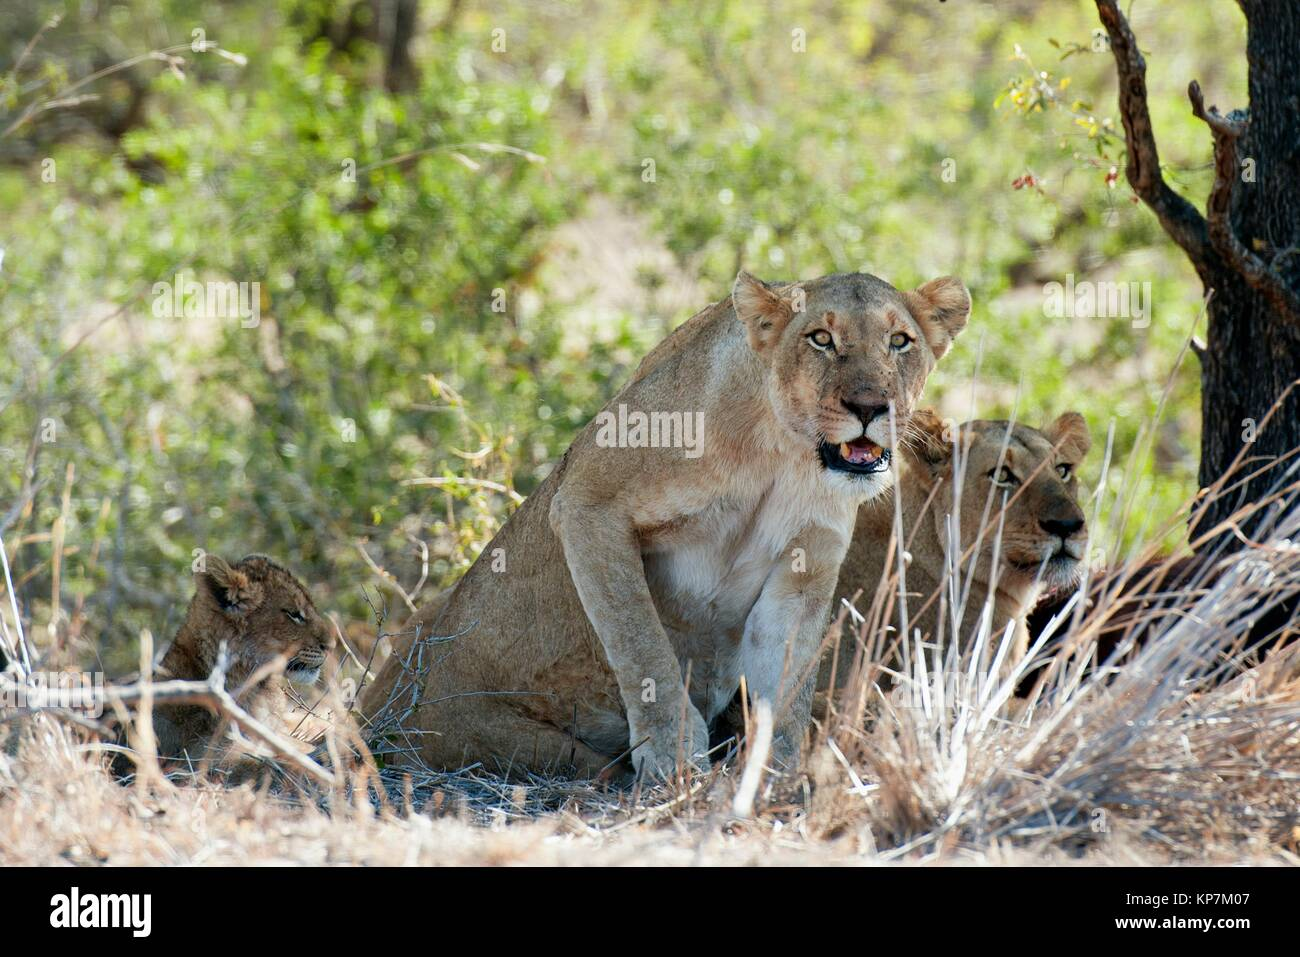 Female Lion (Panthera leo) standing up next to cub, Kruger National Park, Transvaal, South Africa. Stock Photo